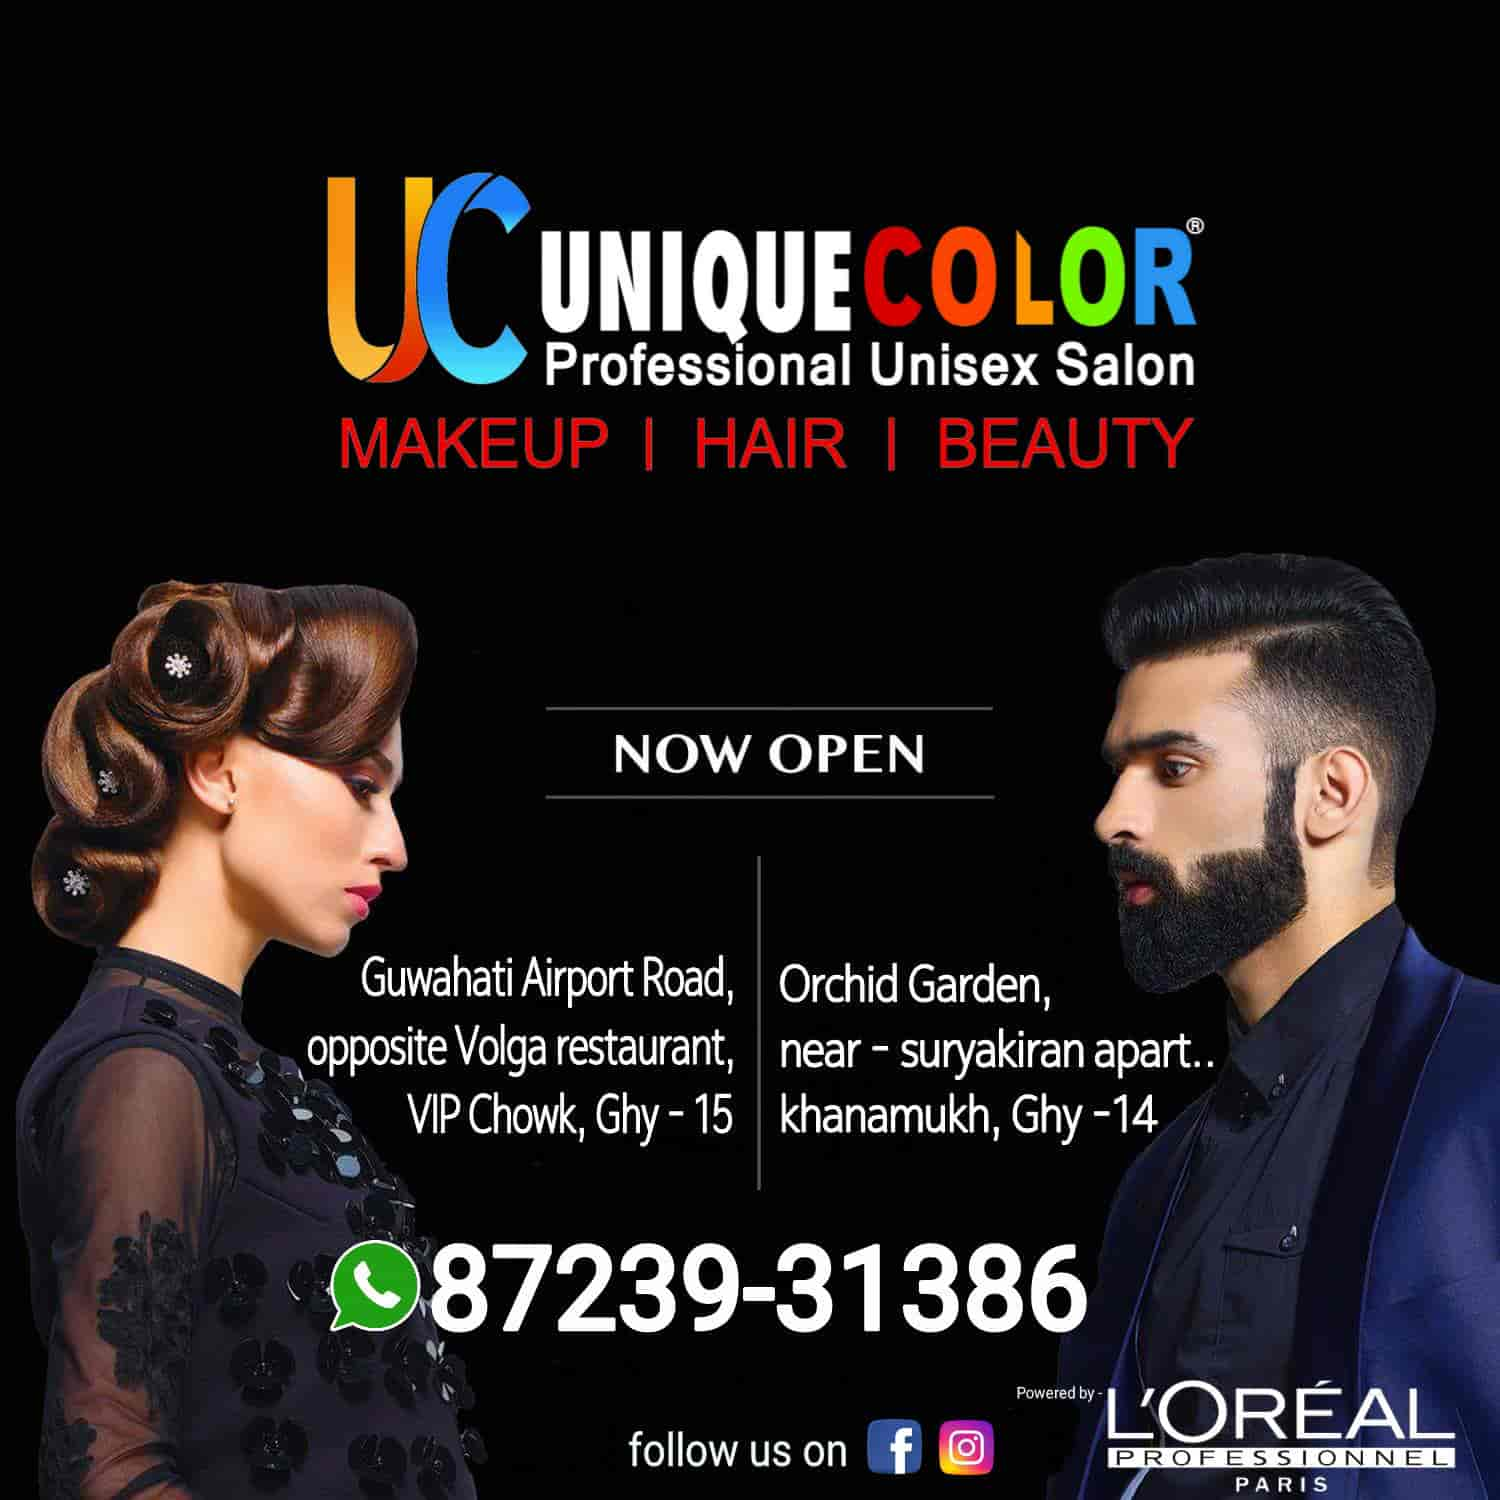 Unique Color Hair & Beauty Salon, Jalukbari - Salons in Guwahati